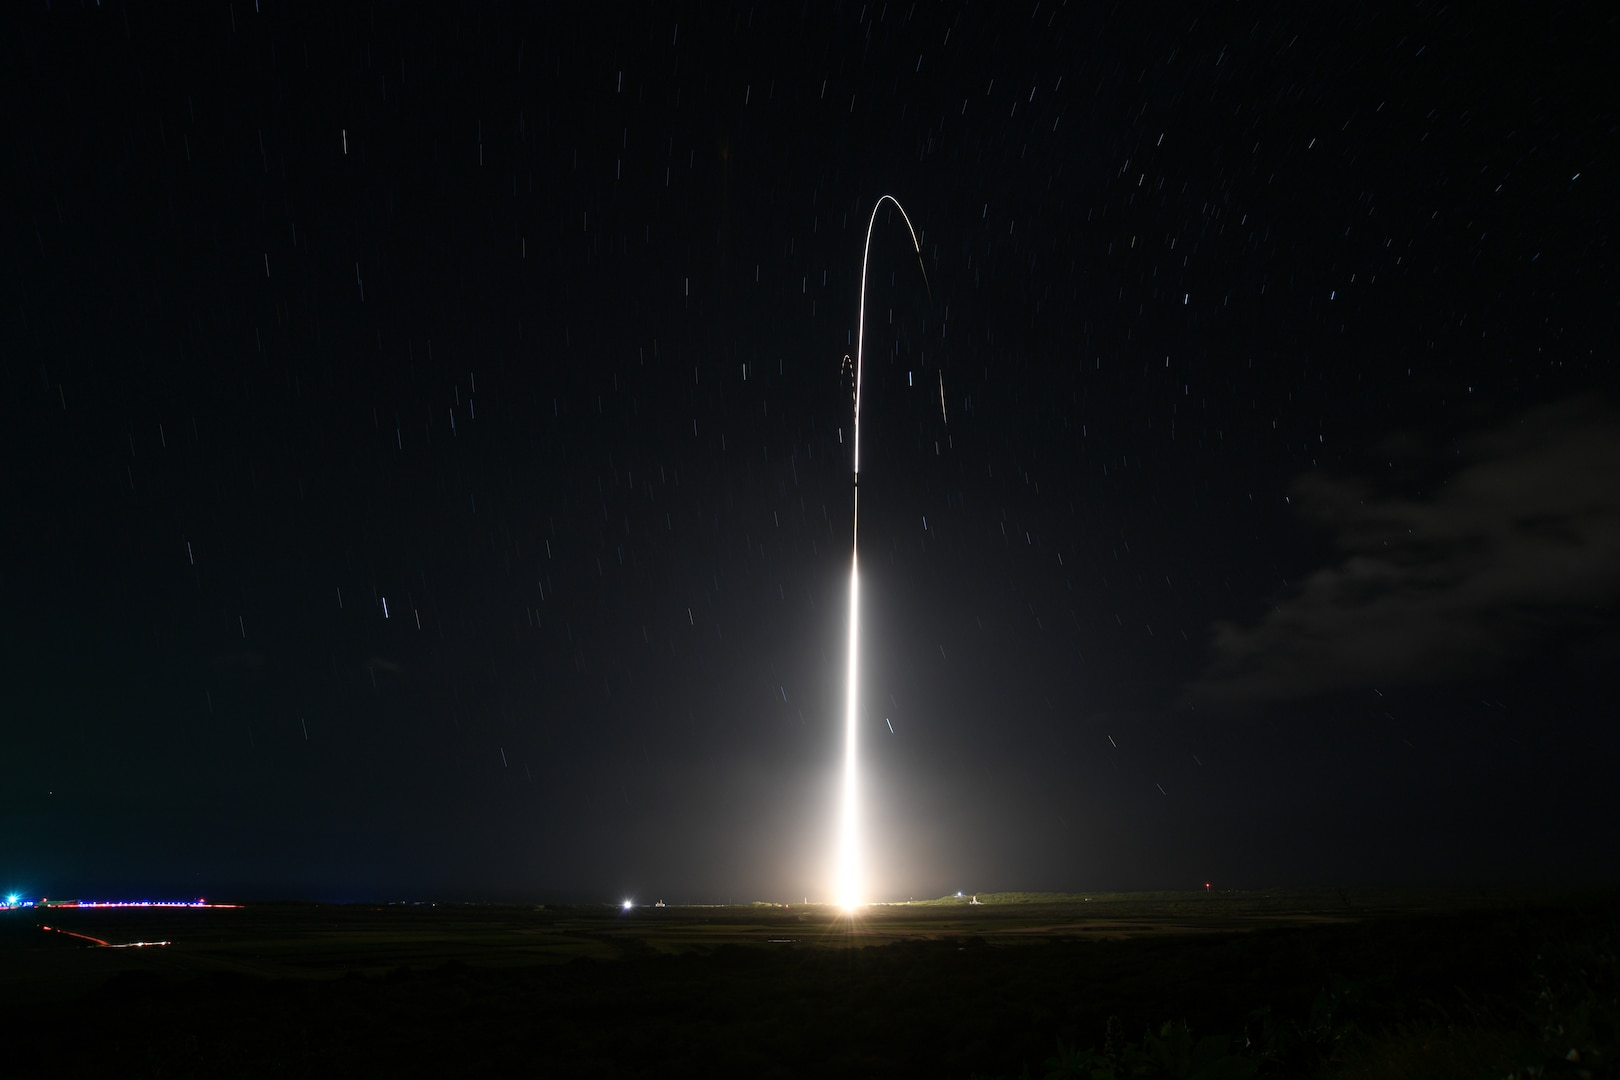 KAUAI, Hawaii (Dec. 10, 2018) A Standard Missile (SM) 3 Block IIA is launched from the Aegis Ashore Missile Defense Test Complex at the Pacific Missile Range Facility at Kauai, Hawaii, Dec. 10, 2018, to successfully intercept an intermediate-range ballistic missile target in space. This is the third successful intercept out of five intercept tests for the SM-3 Block IIA missile. Aegis shore-based facilities will be equipped with the SM-3 Block IIA missiles to strengthen America's short- and intermediate-range missile defense strategy.